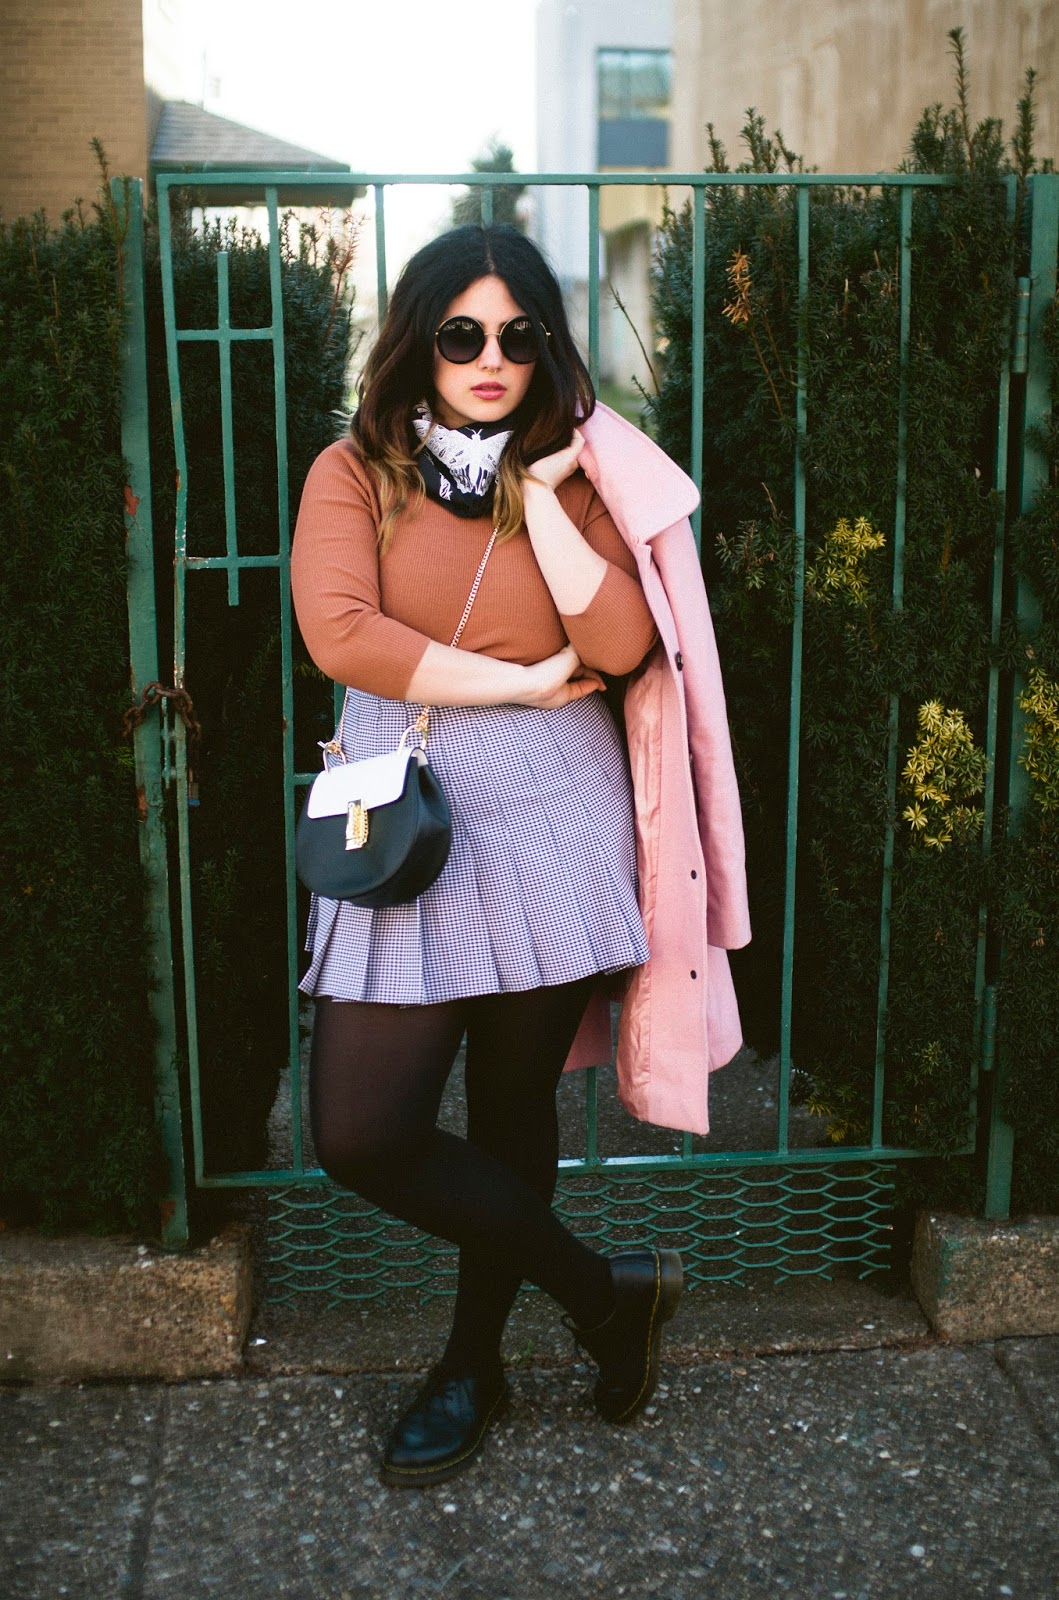 Miu Miu, sunglasses, Philadelphia, blogger, fashion, style, street, Northern Liberties